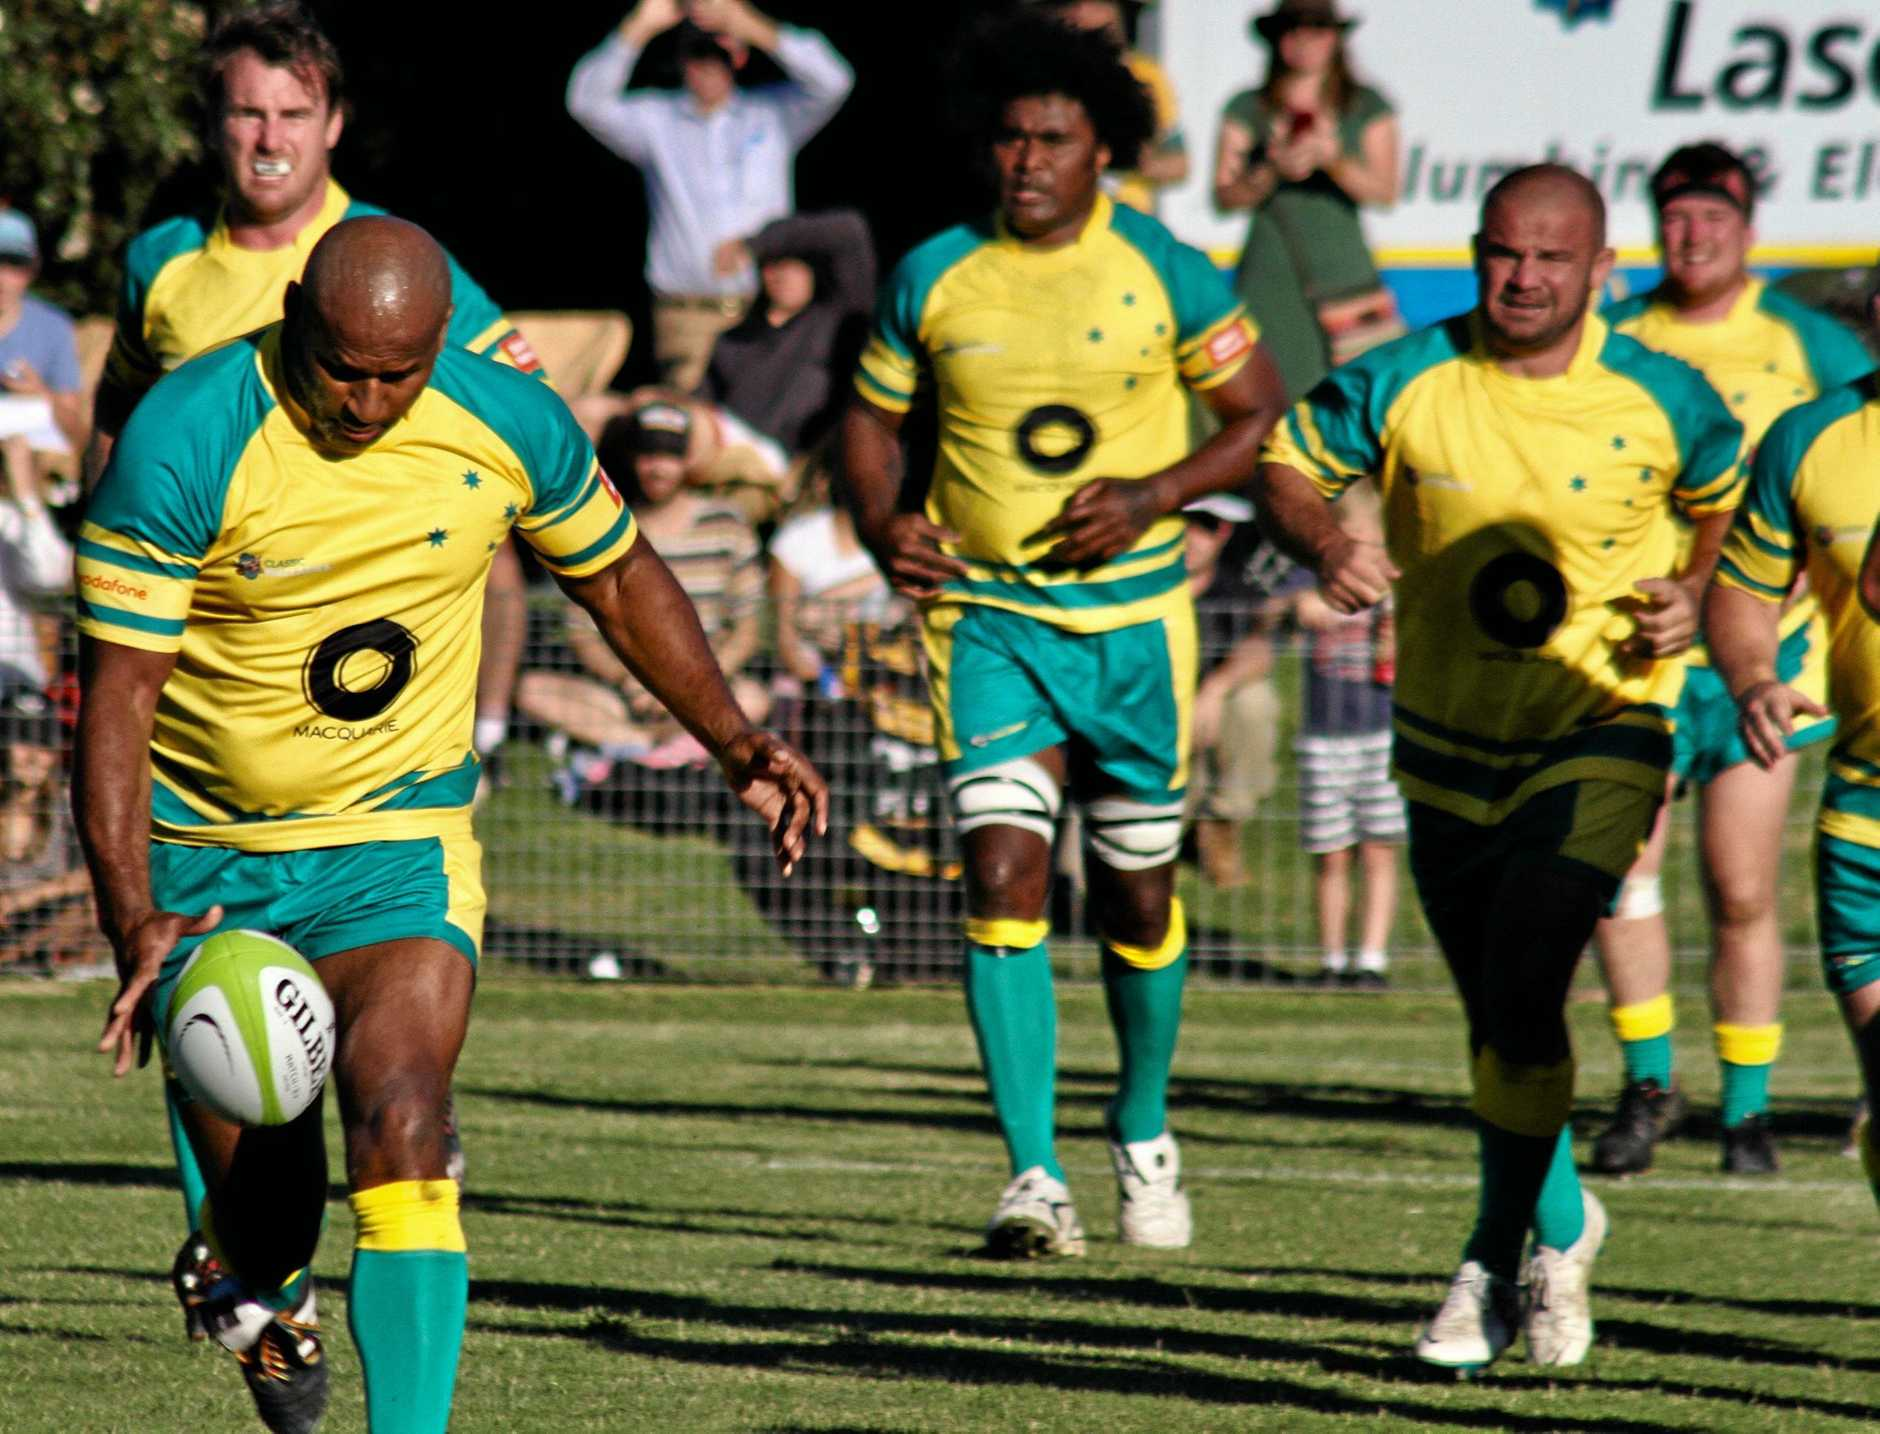 WALLABY GOLD: Lote Tuqiri will be among the former greats heading to Gold Park on Sunday when the Classic Wallabies take on the Darling Downs Barbarians.